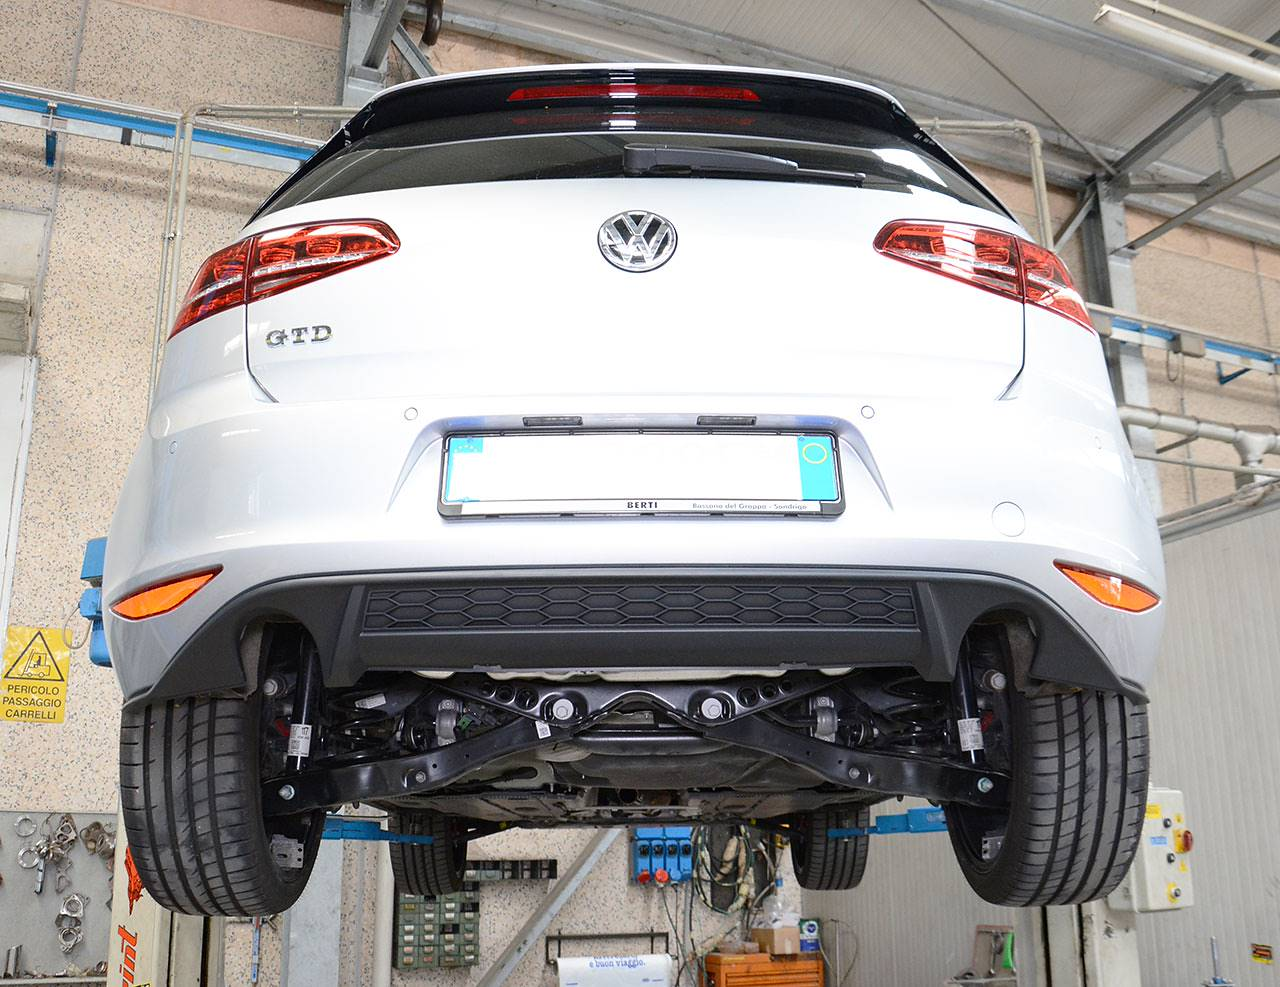 Golf Mk7 GTD with GTI diffuser